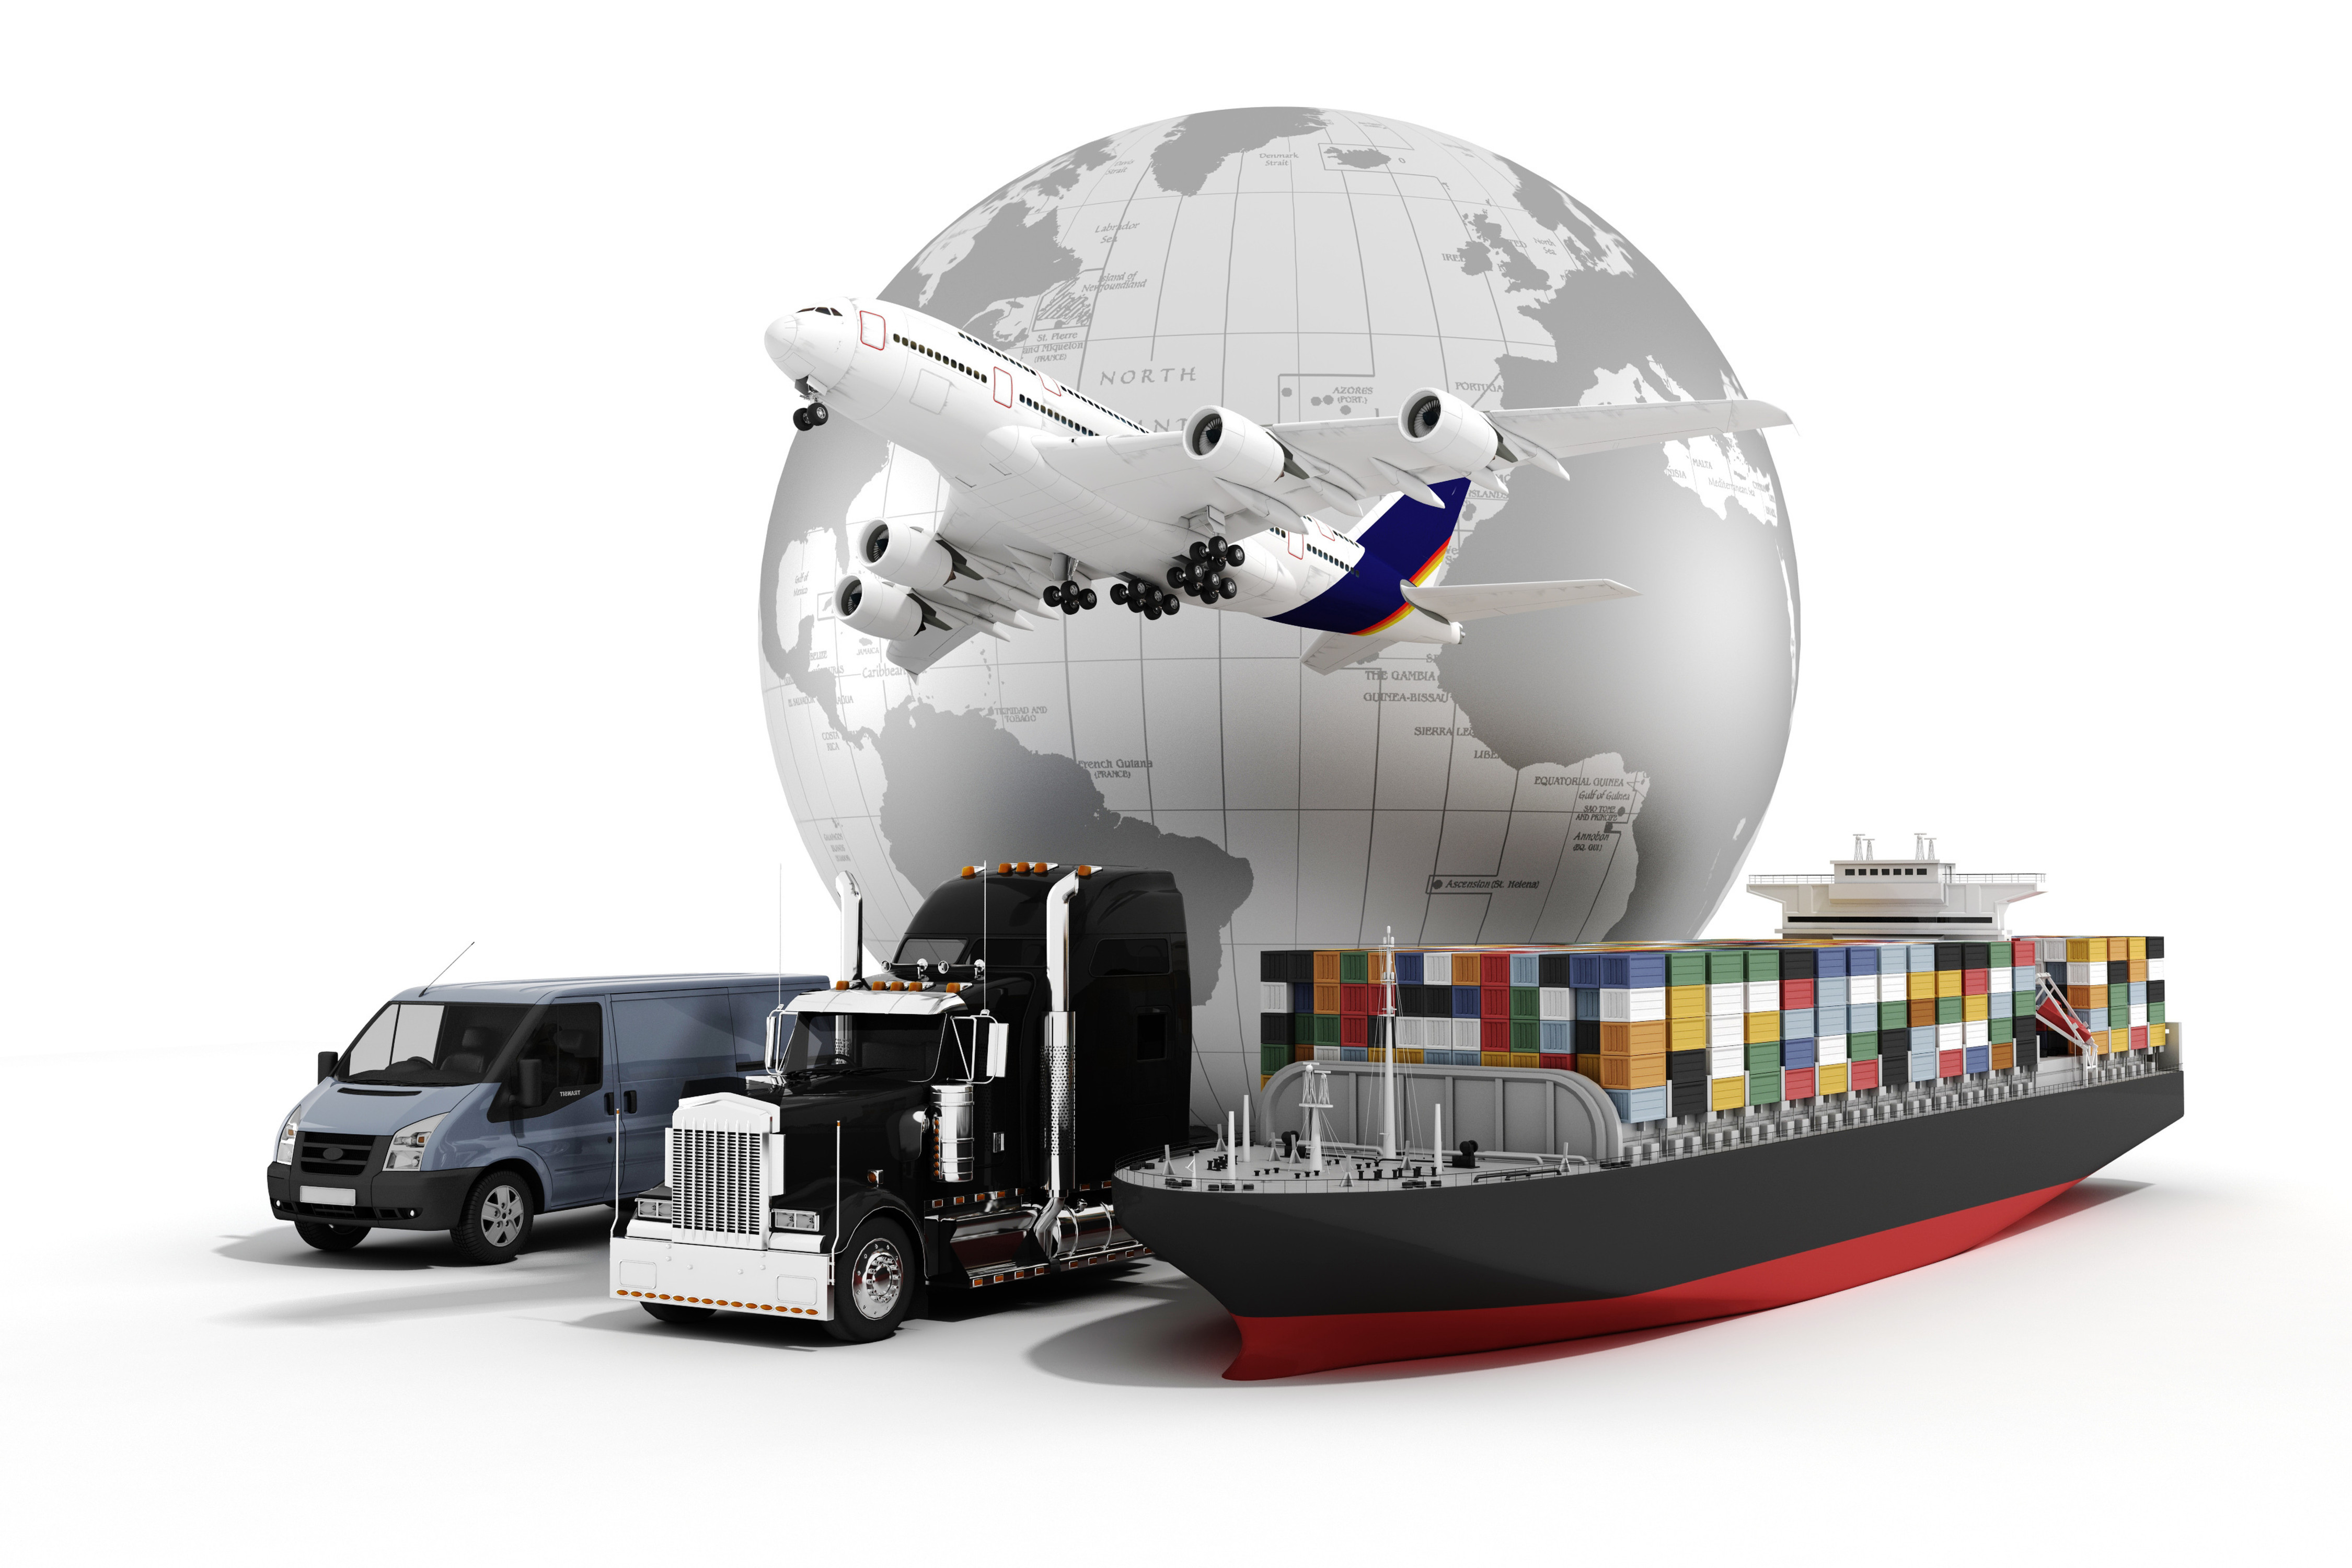 importance intermodal transporation global Given the global boom in the intermodal freight transport industry, the need for standards has risen dramatically add in today's heightened security concerns and there is perhaps no other sector that better illustrates the axiom the time is now as it looks for new ways to manage the challenges of moving goods across the planet.